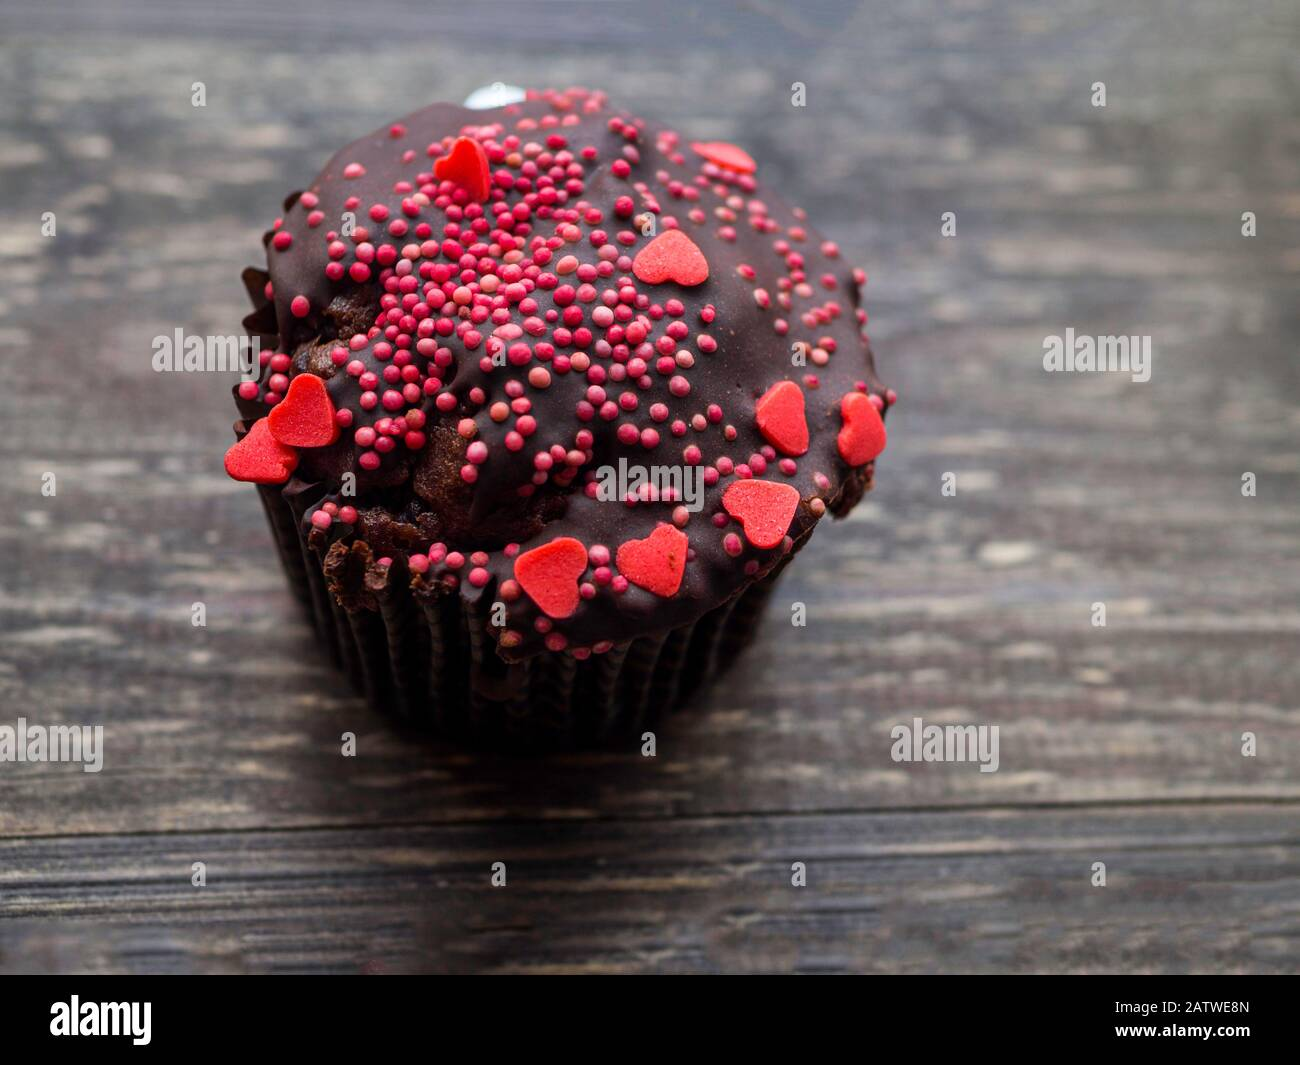 Awesome Chocolate Cupcake With Decorations For Valentines Day Mothers Birthday Cards Printable Riciscafe Filternl